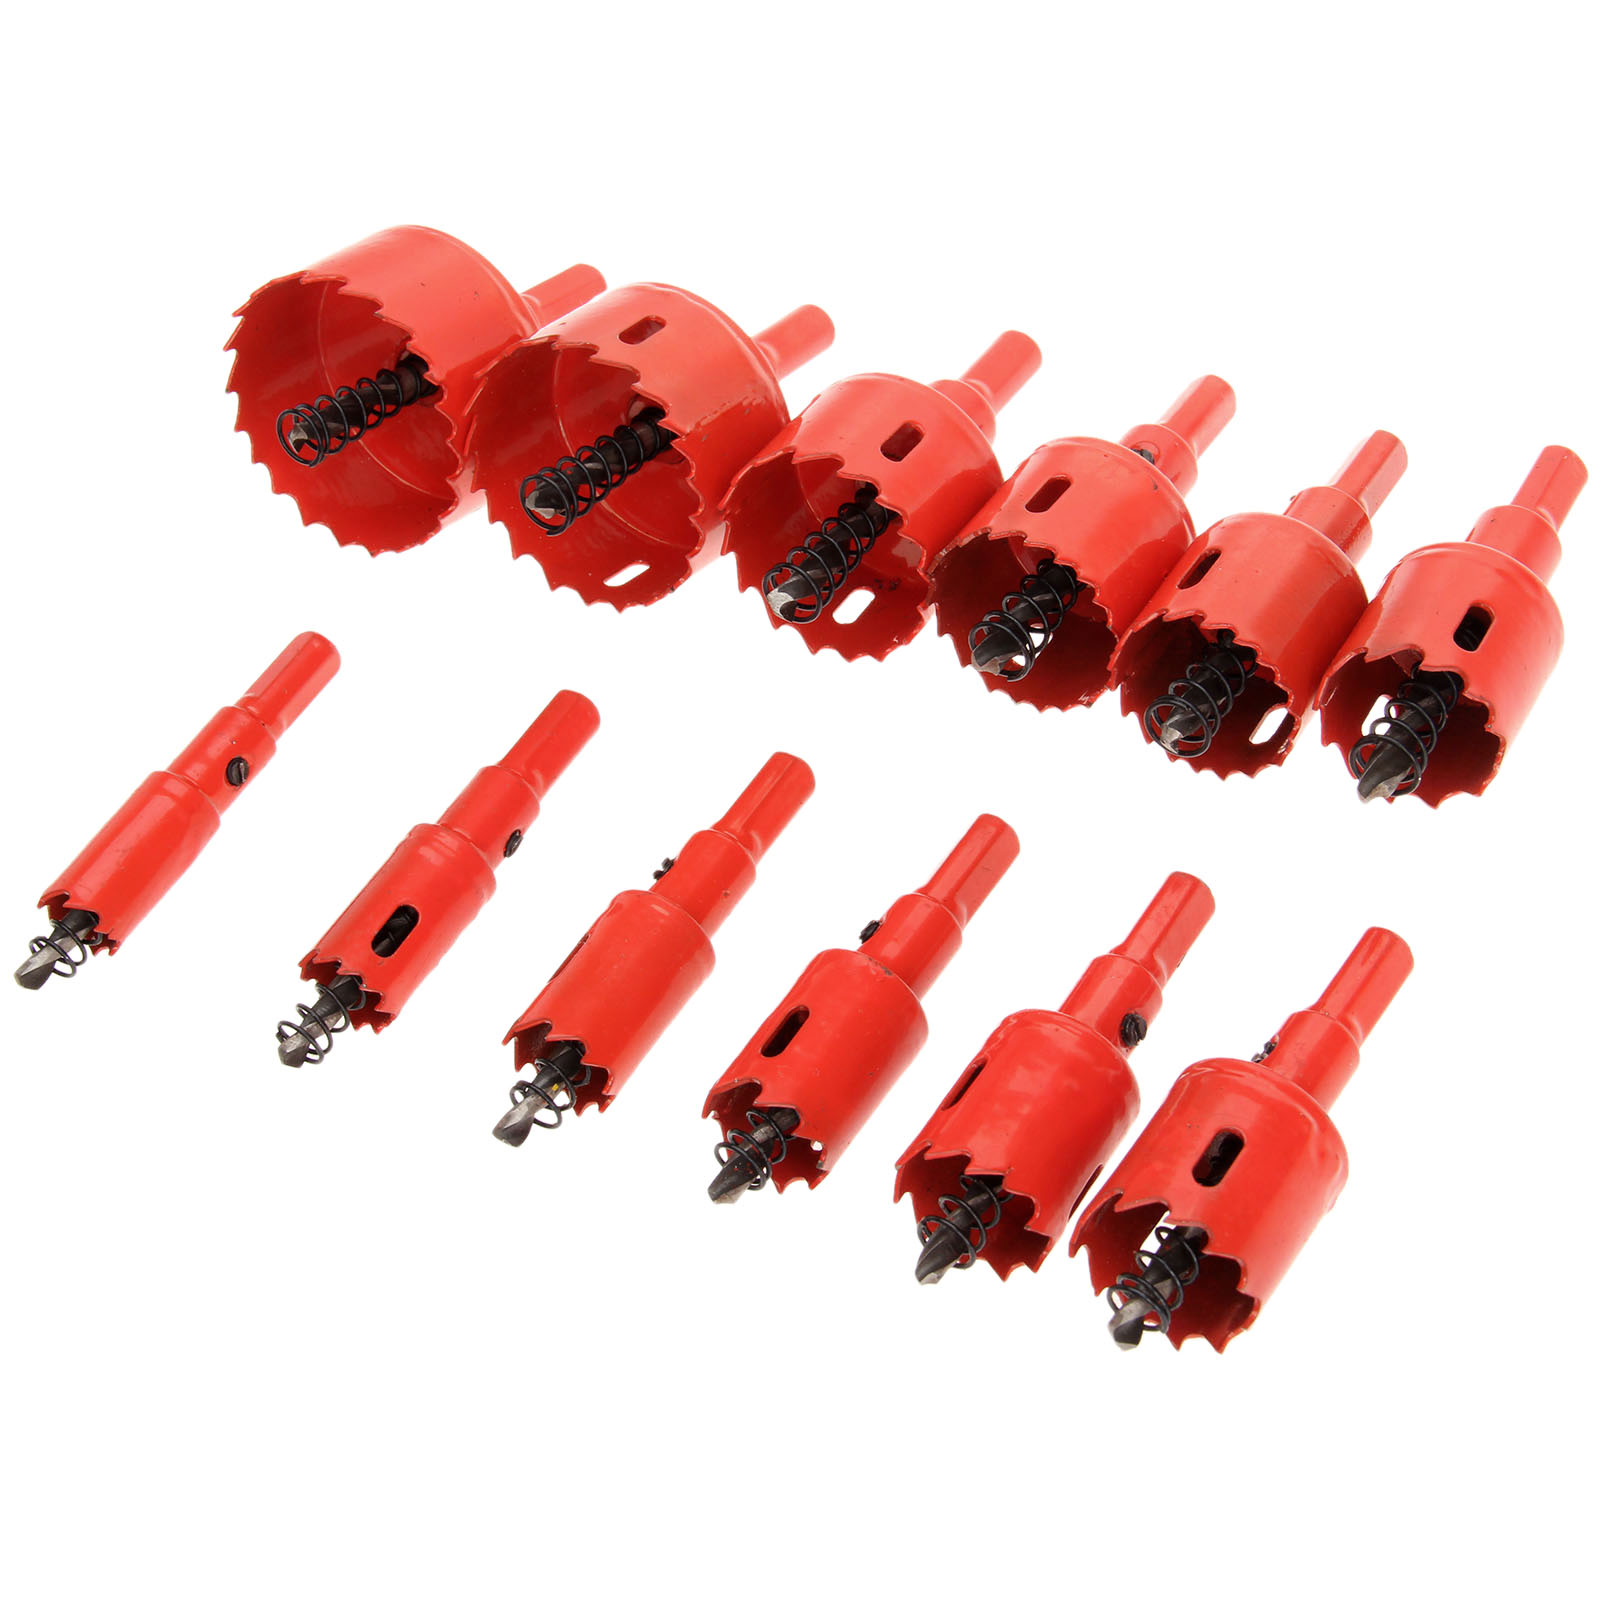 1Pc 16mm-53mm Drill Bit Hole Saw Twist Drill Bits Cutter Power Tool Metal Holes Drilling Kit Carpentry Tools for Wood Steel Iron 1pc 16mm carbide tip drill bit set hole saw cutter durable metalworking drilling tools for metal alloy high quality